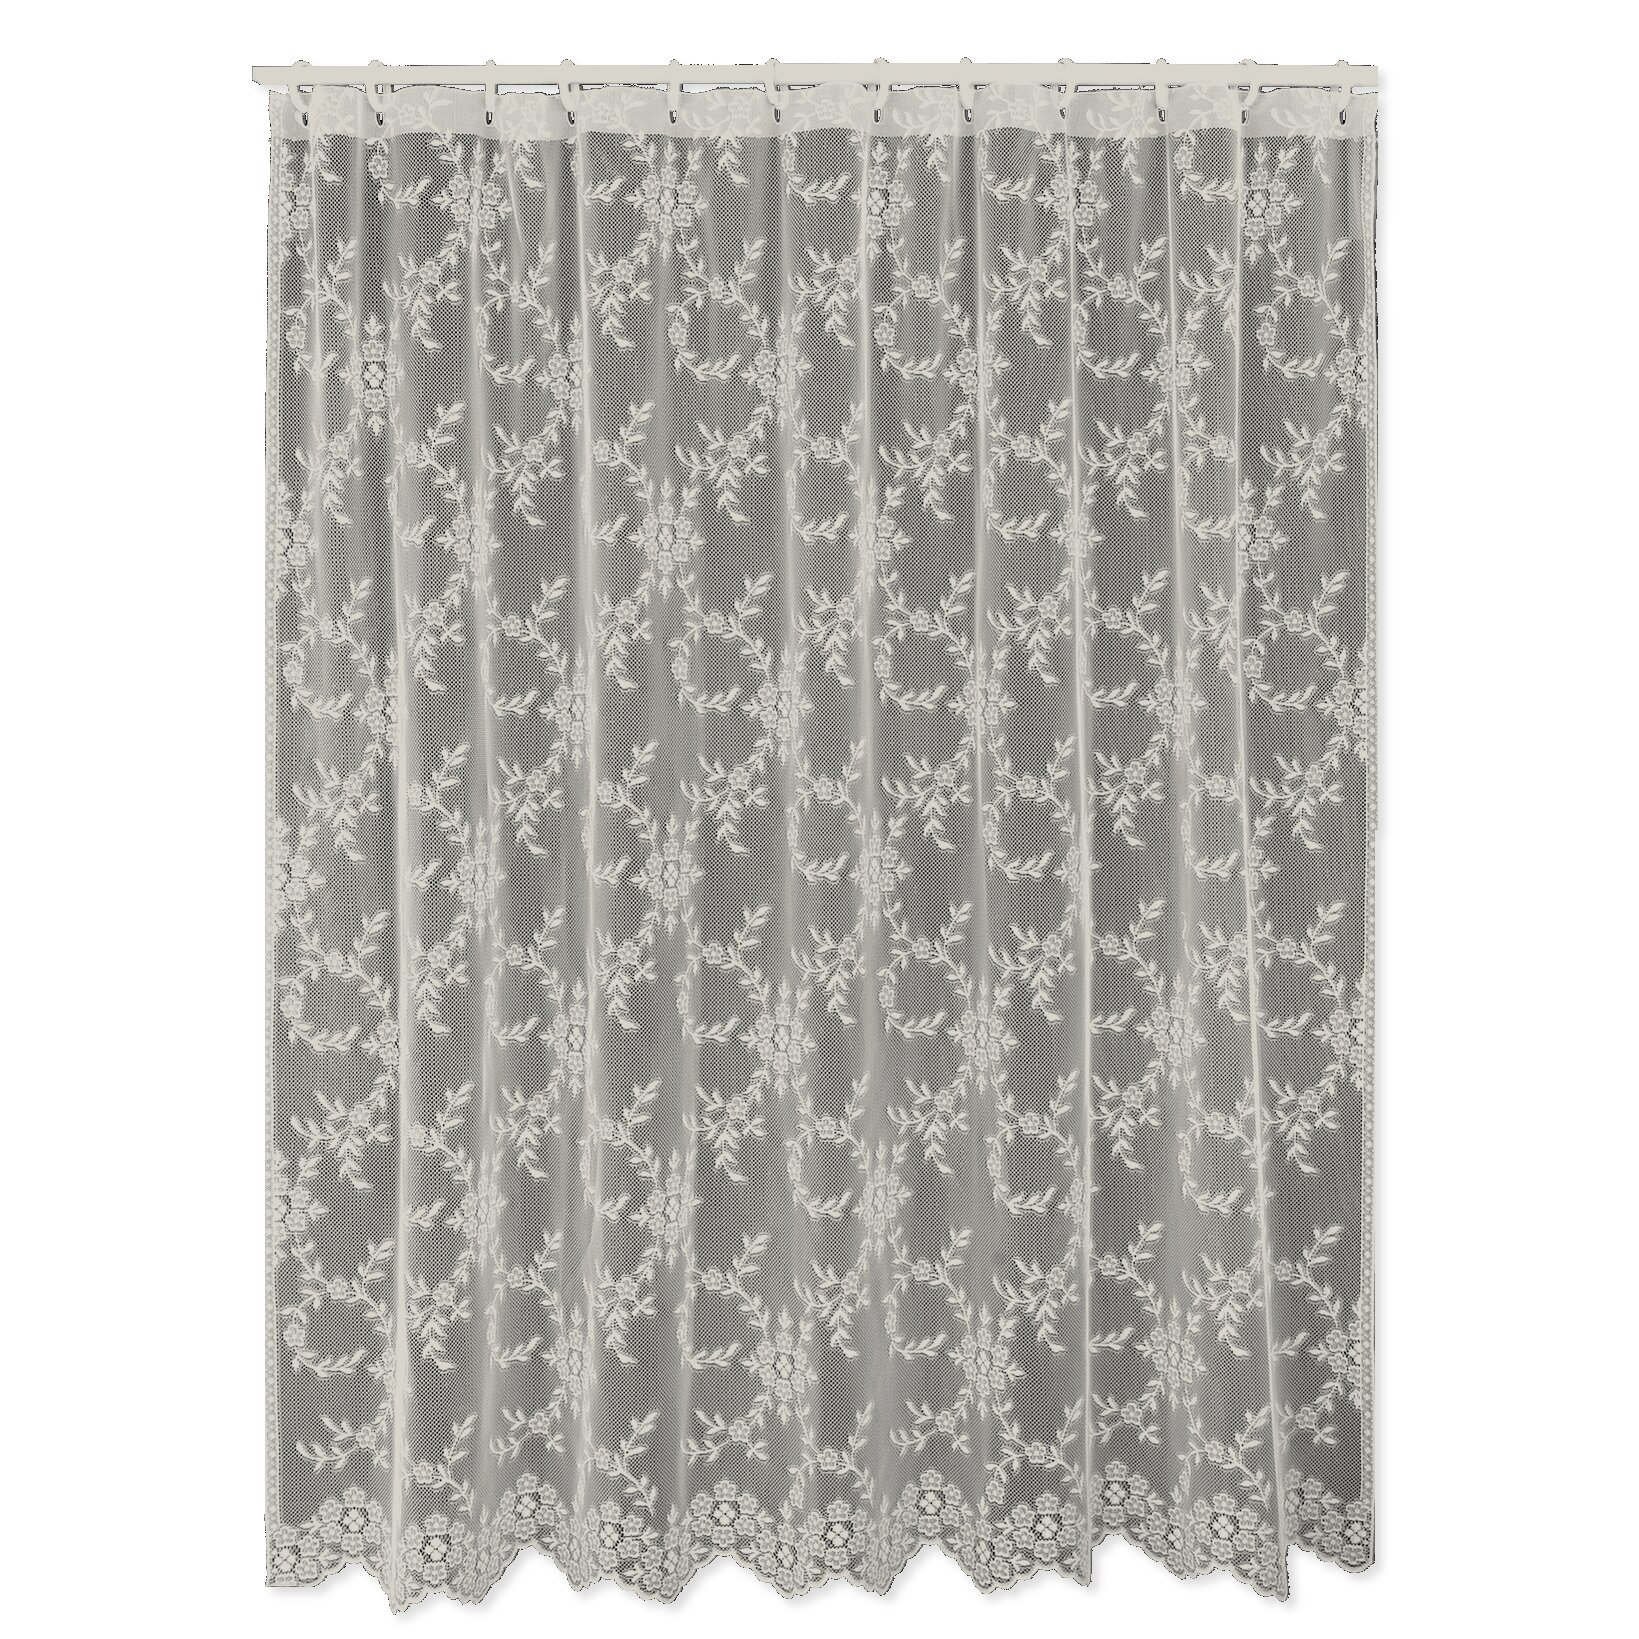 Heritage Lace Downton Abbey Yorkshire Shower Curtain  Reviews - Beige and gray shower curtain